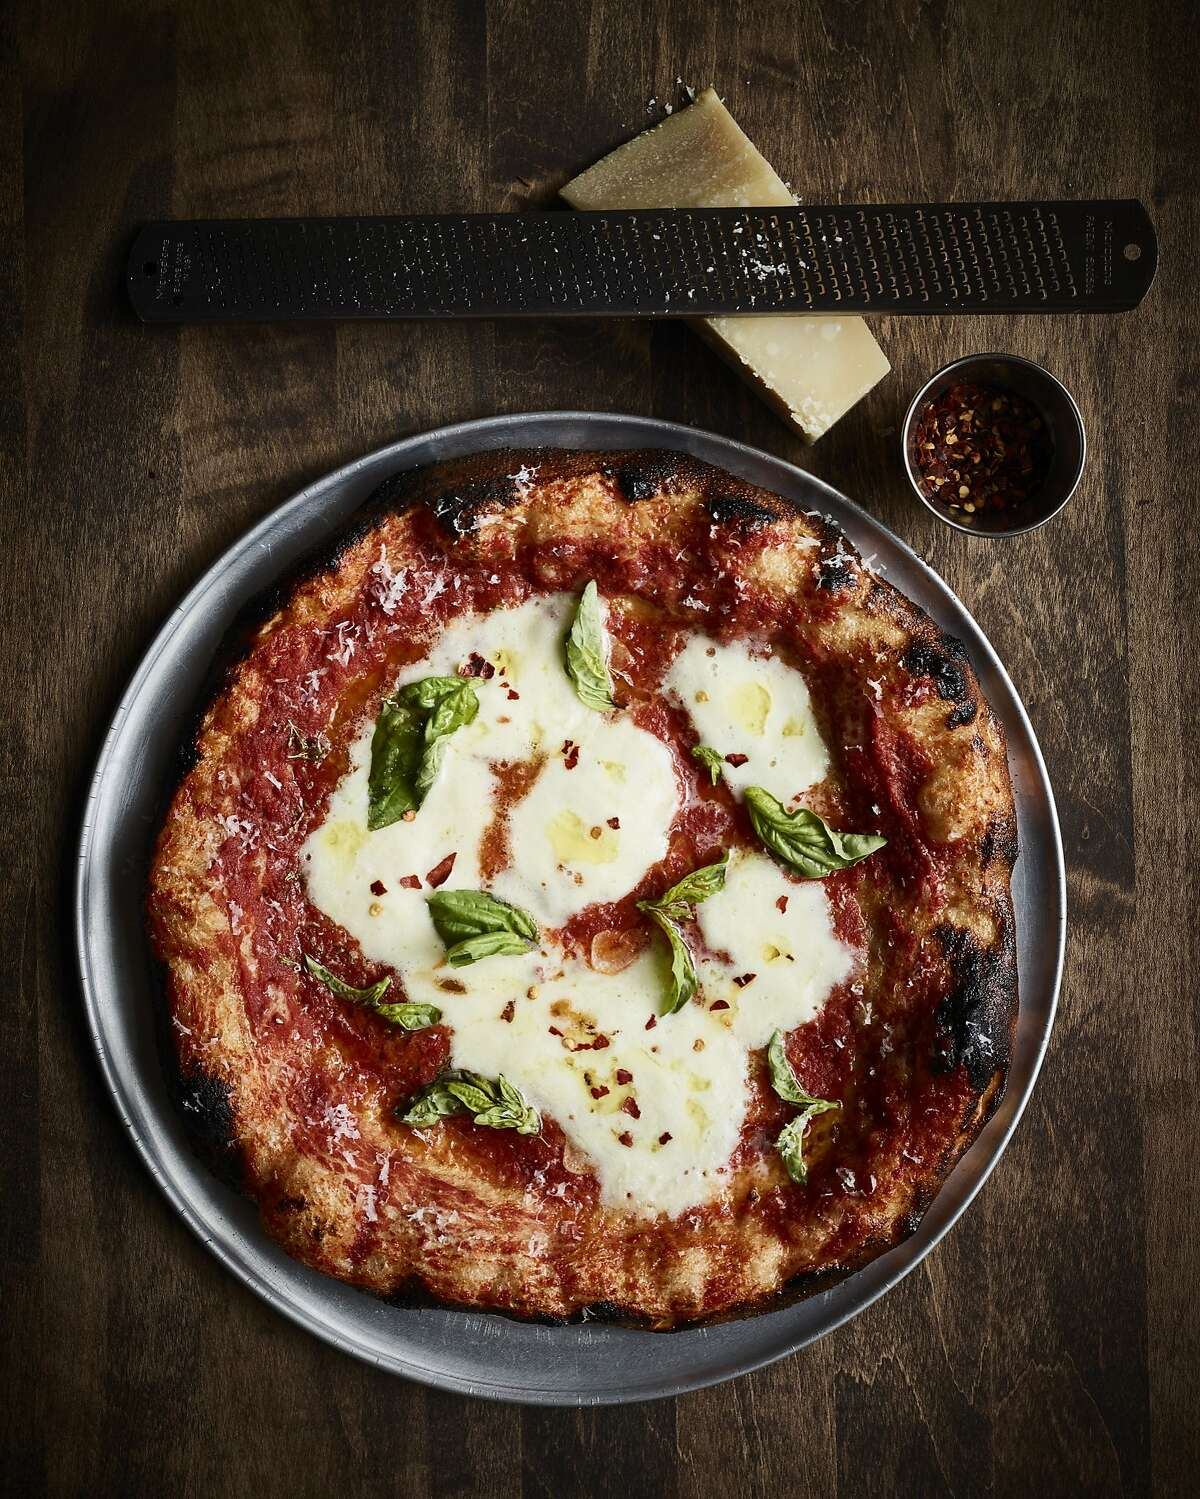 Che Fico's chef, David Nayfeld, became a certified pizzaiolo in Naples, and makes a sourdough crust that is blackened around the edges on purpose.